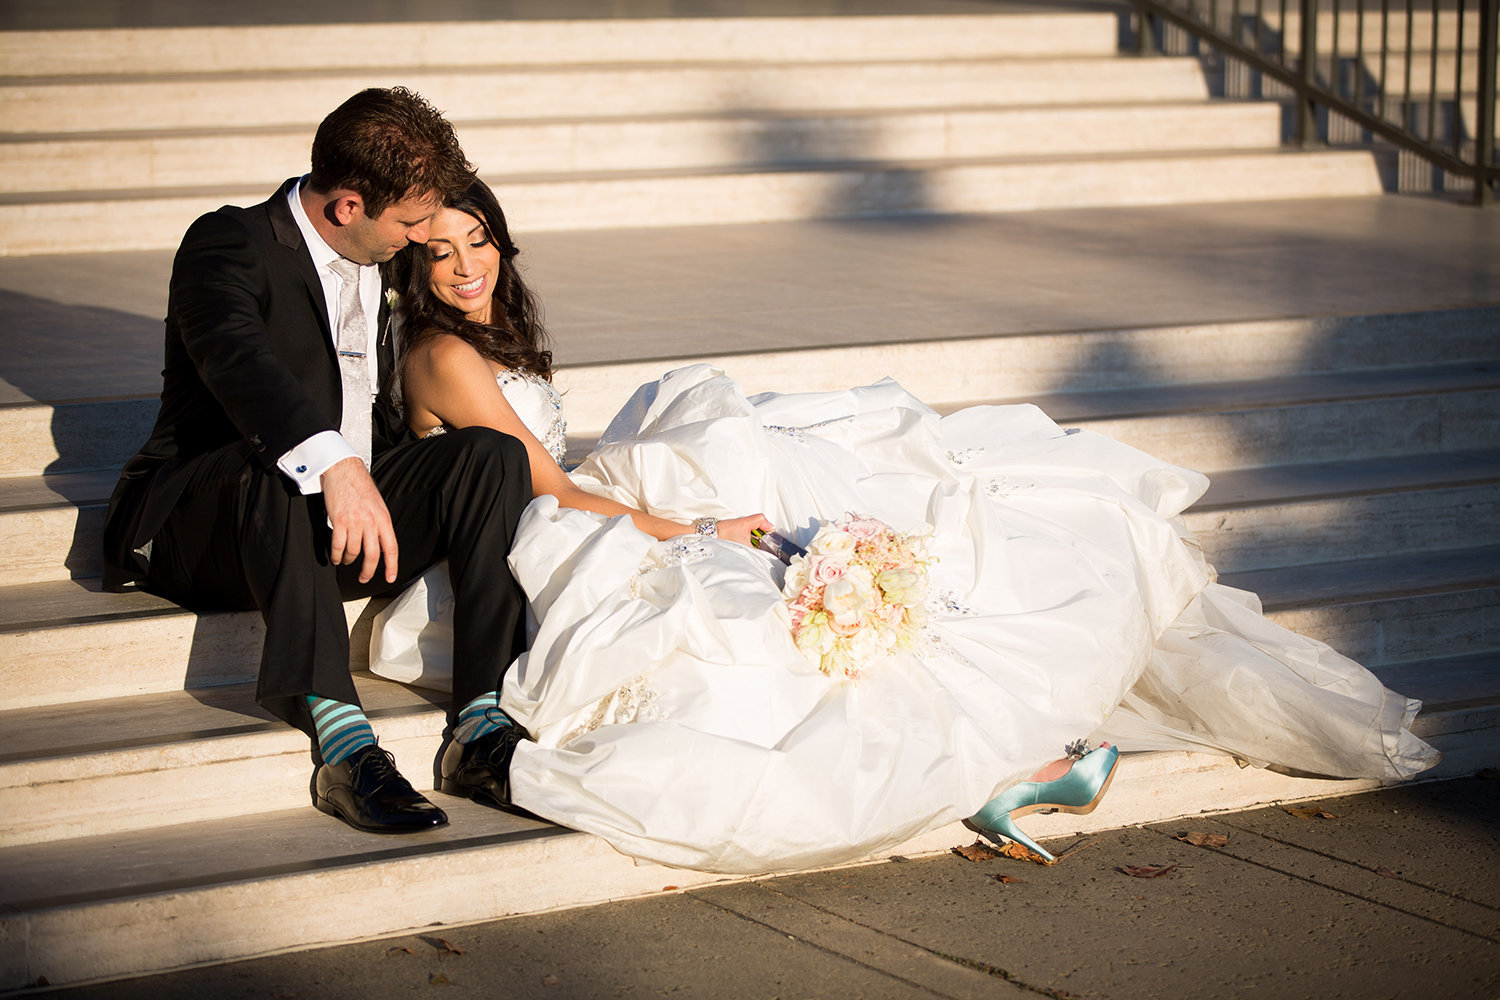 Romantic posing idea for bride and groom with stairs